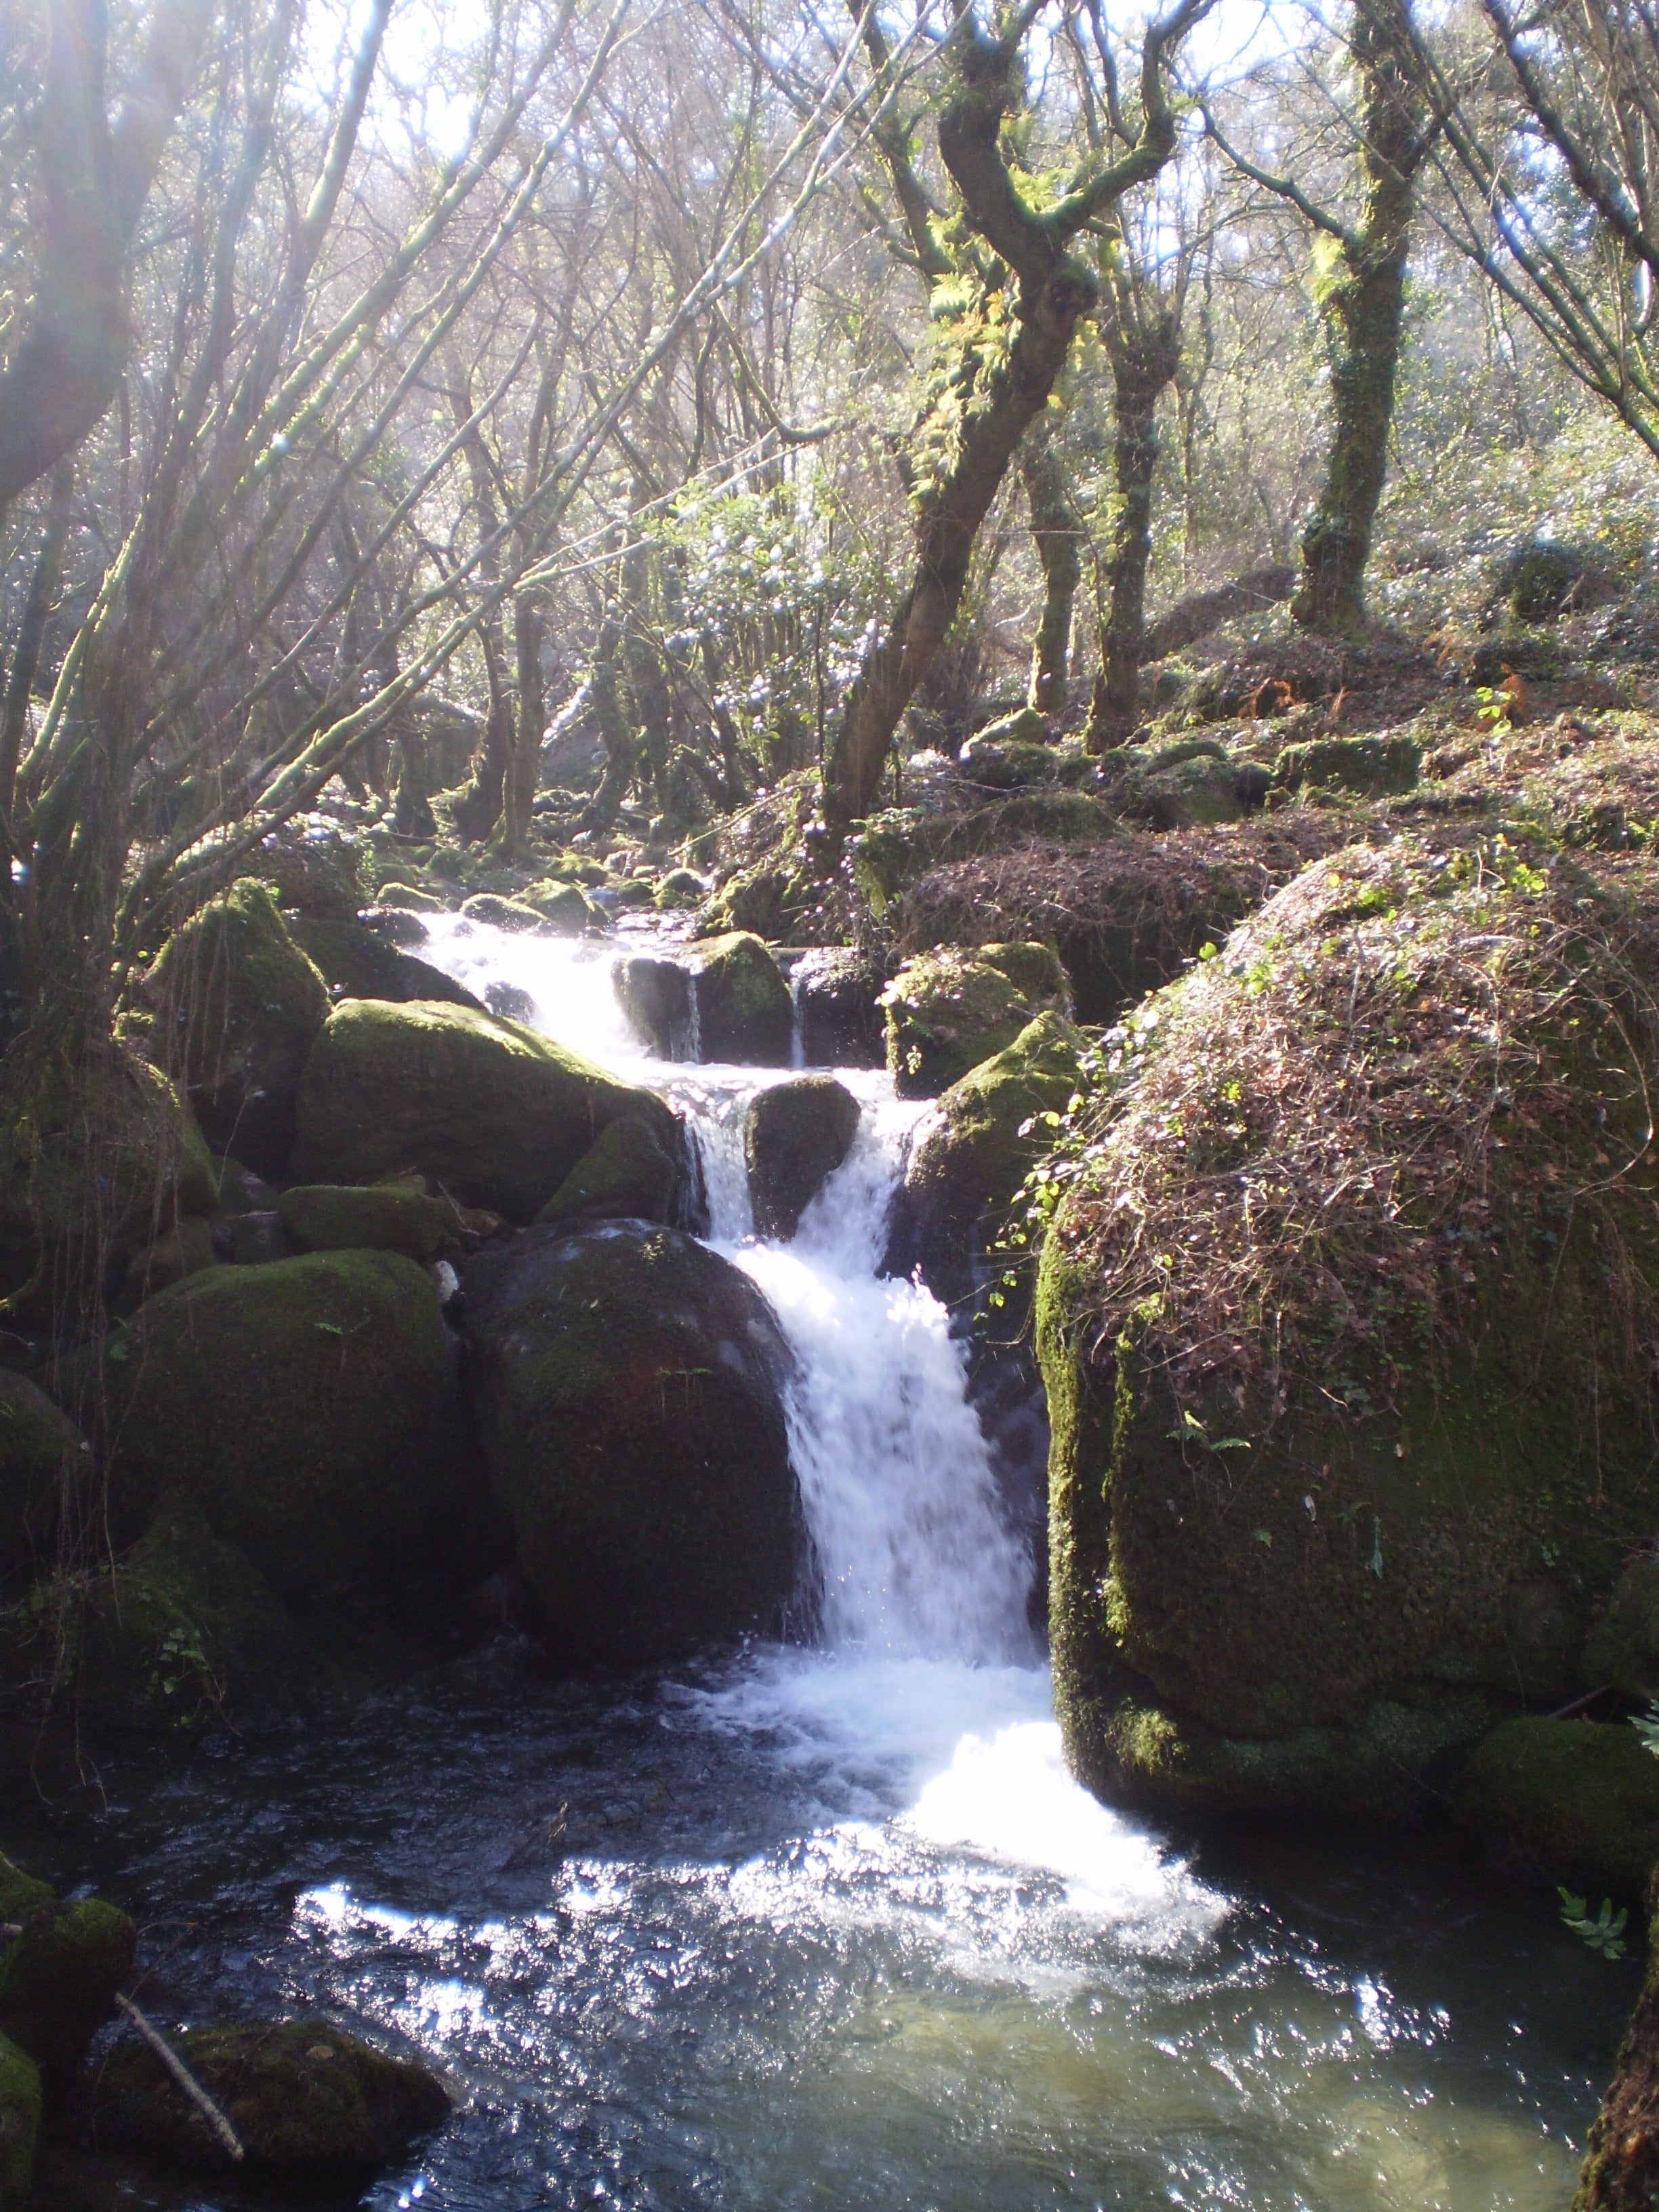 Route of the stone and the water - Rio Armenteira